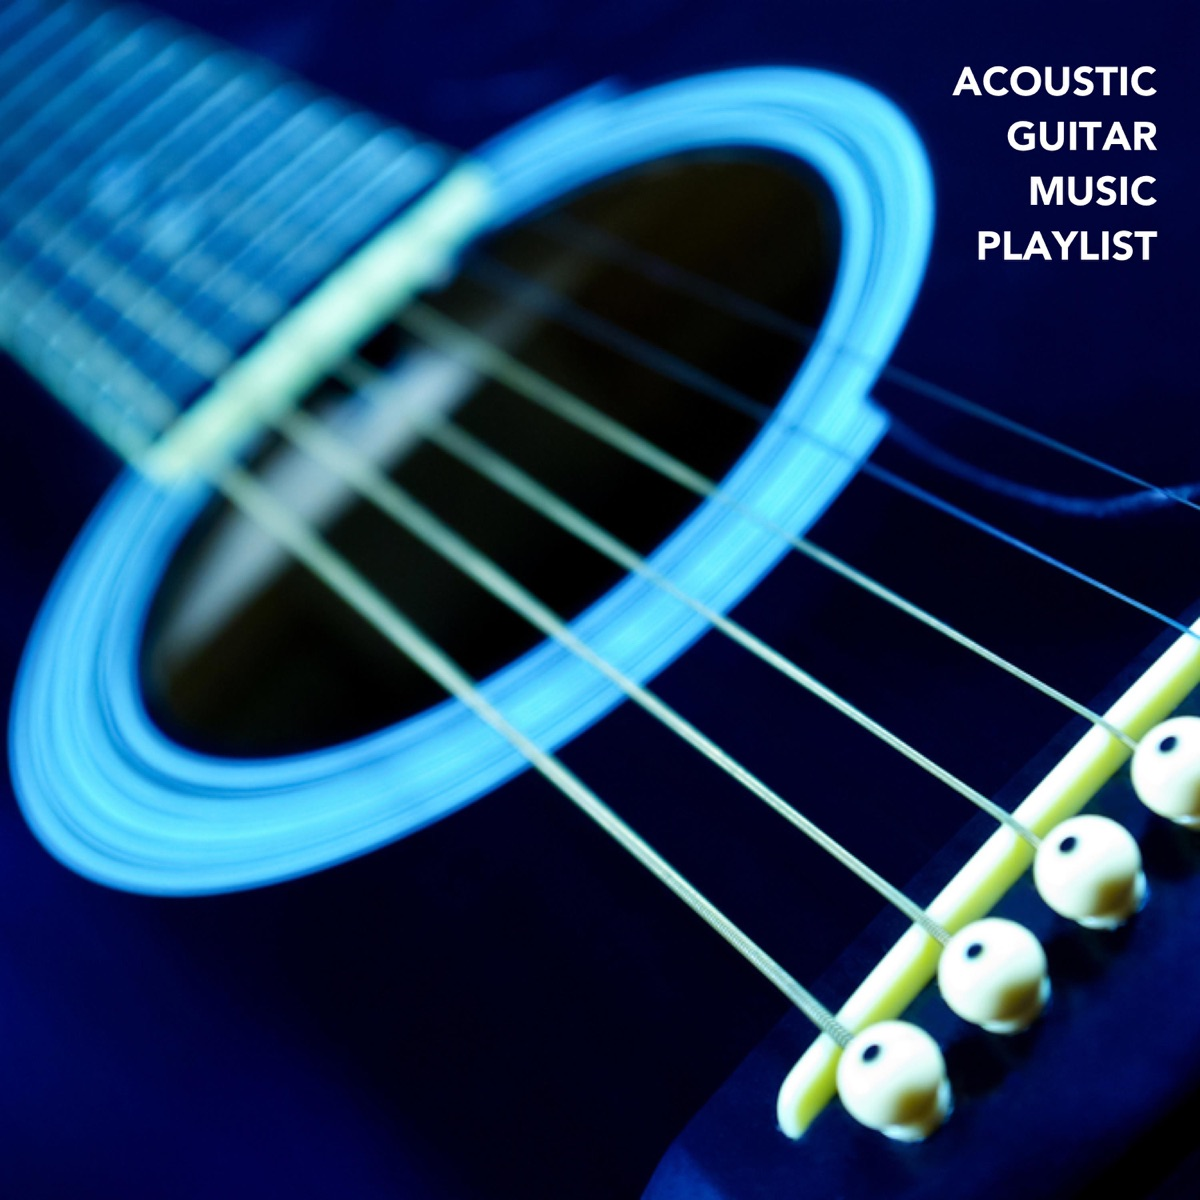 Acoustic Guitar Music Playlist Album Cover by Various Artists